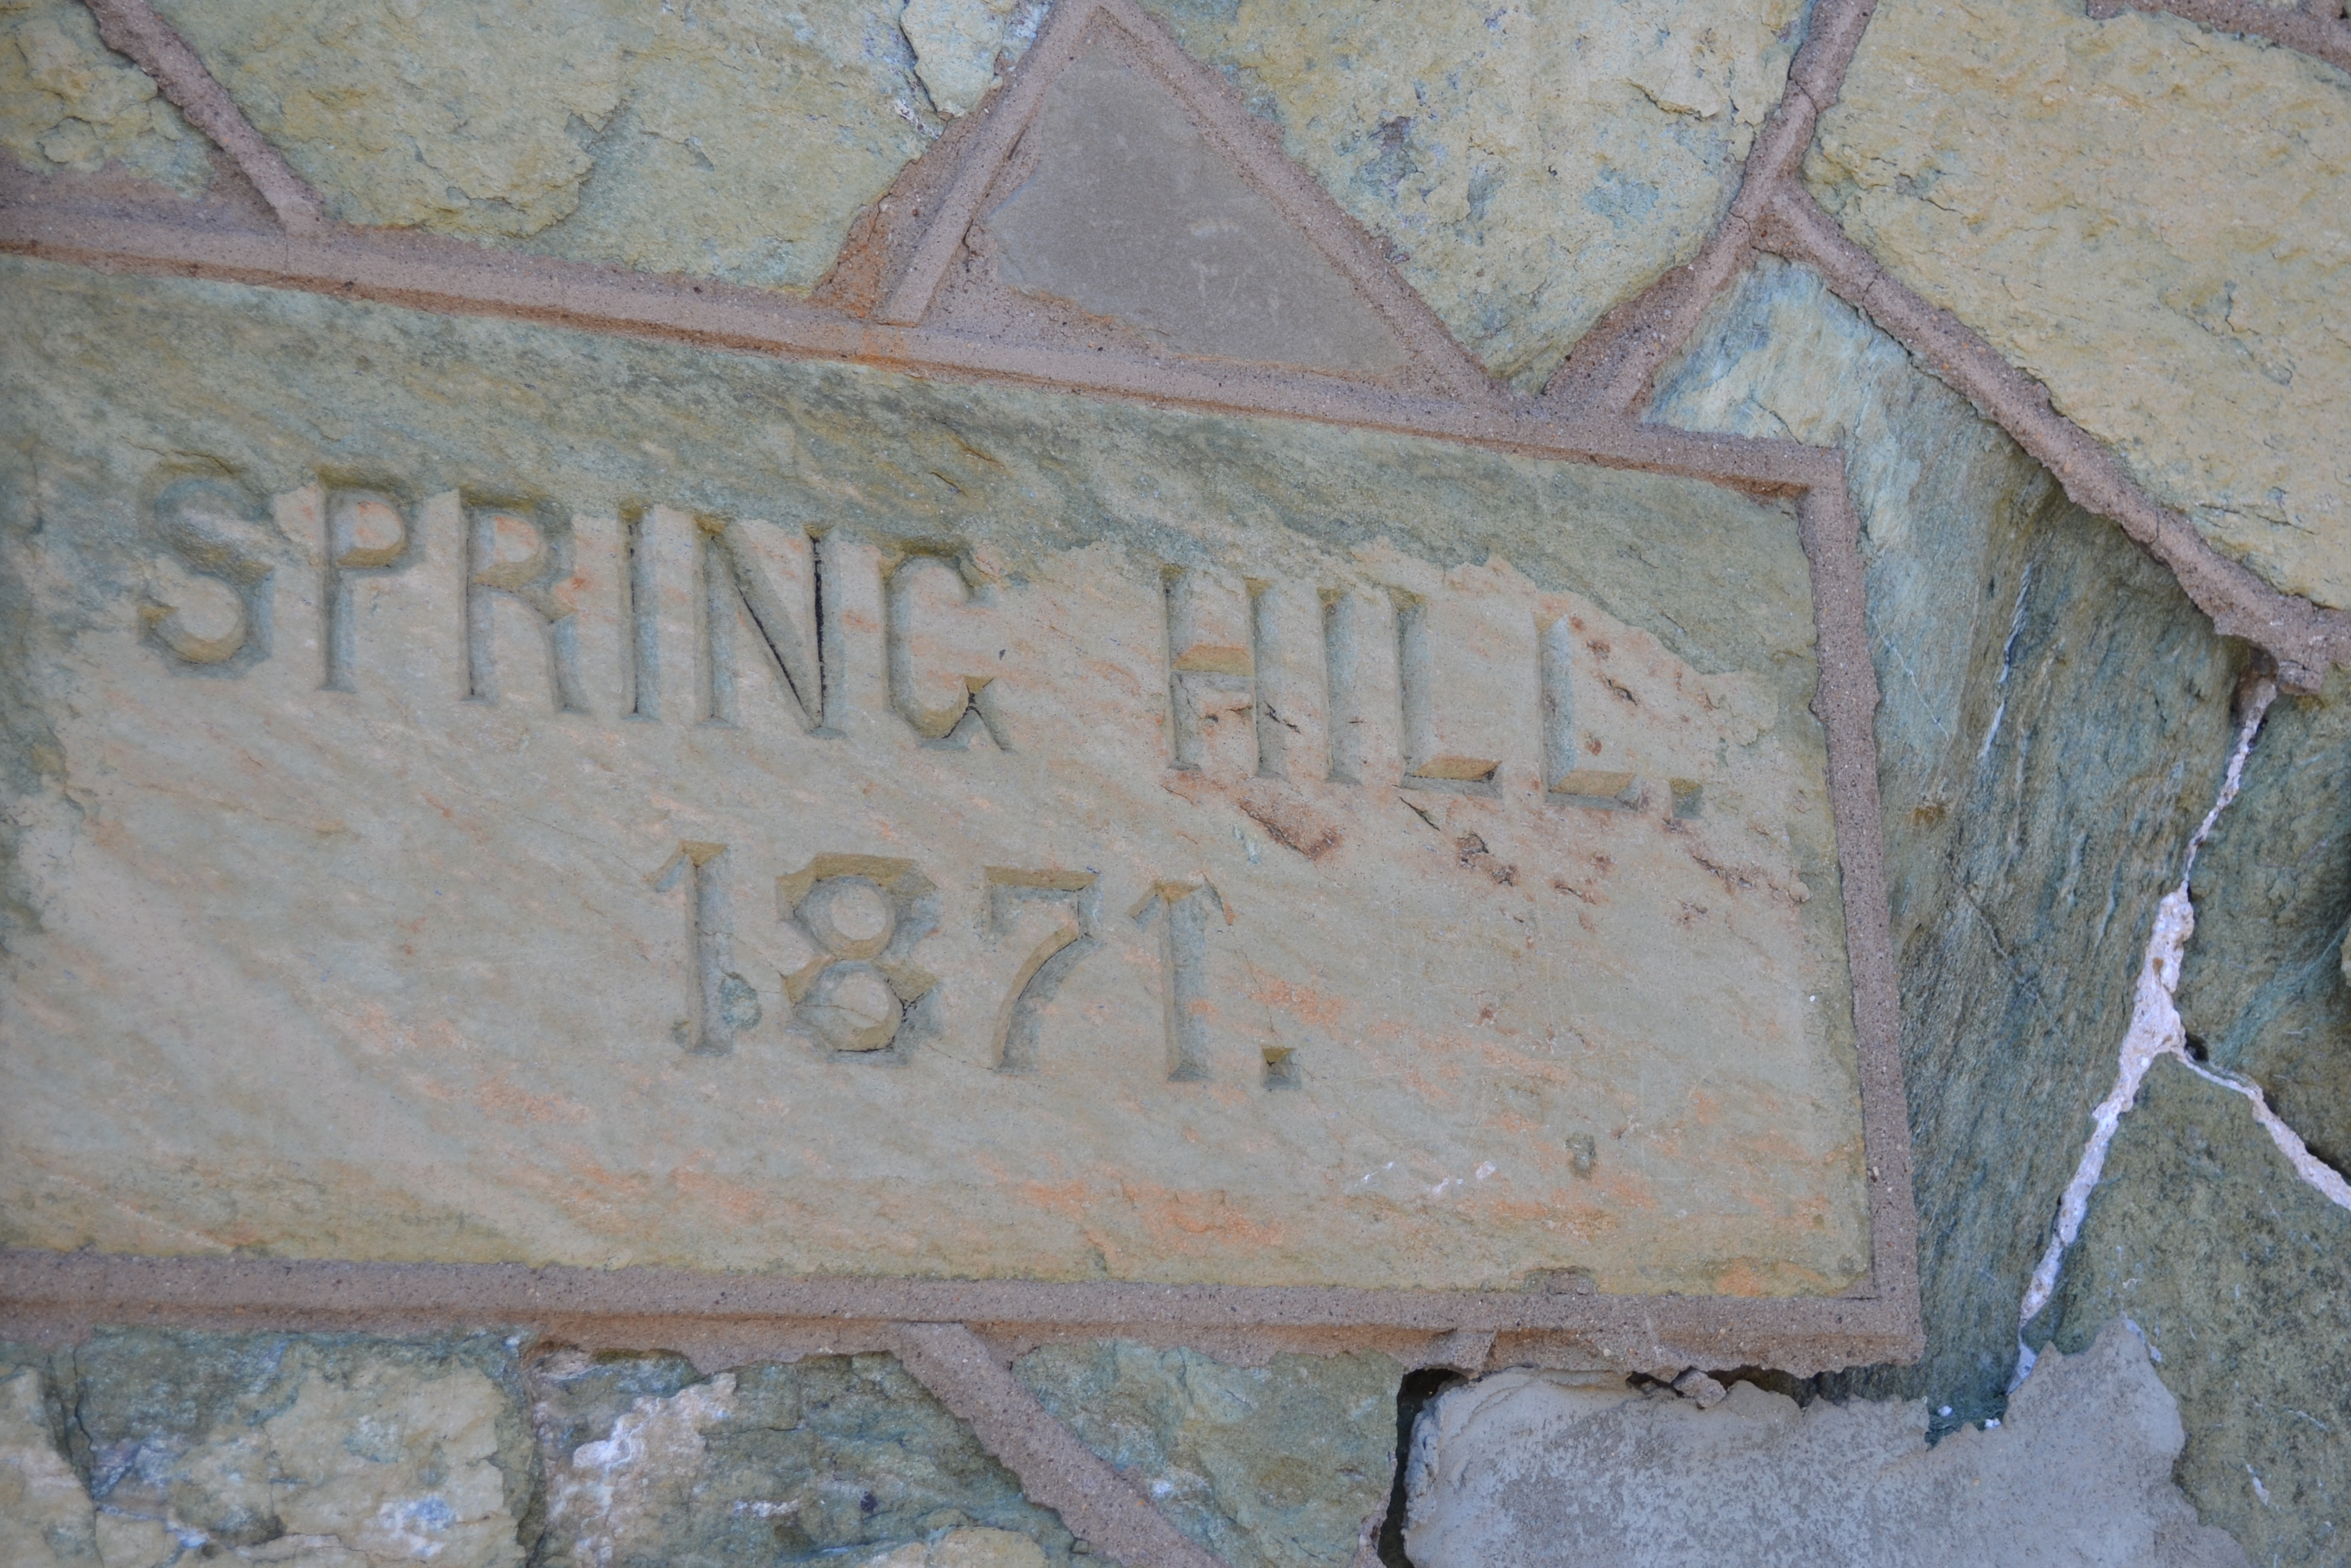 The station dates back to 1871 when it was known as Spring Hill Station